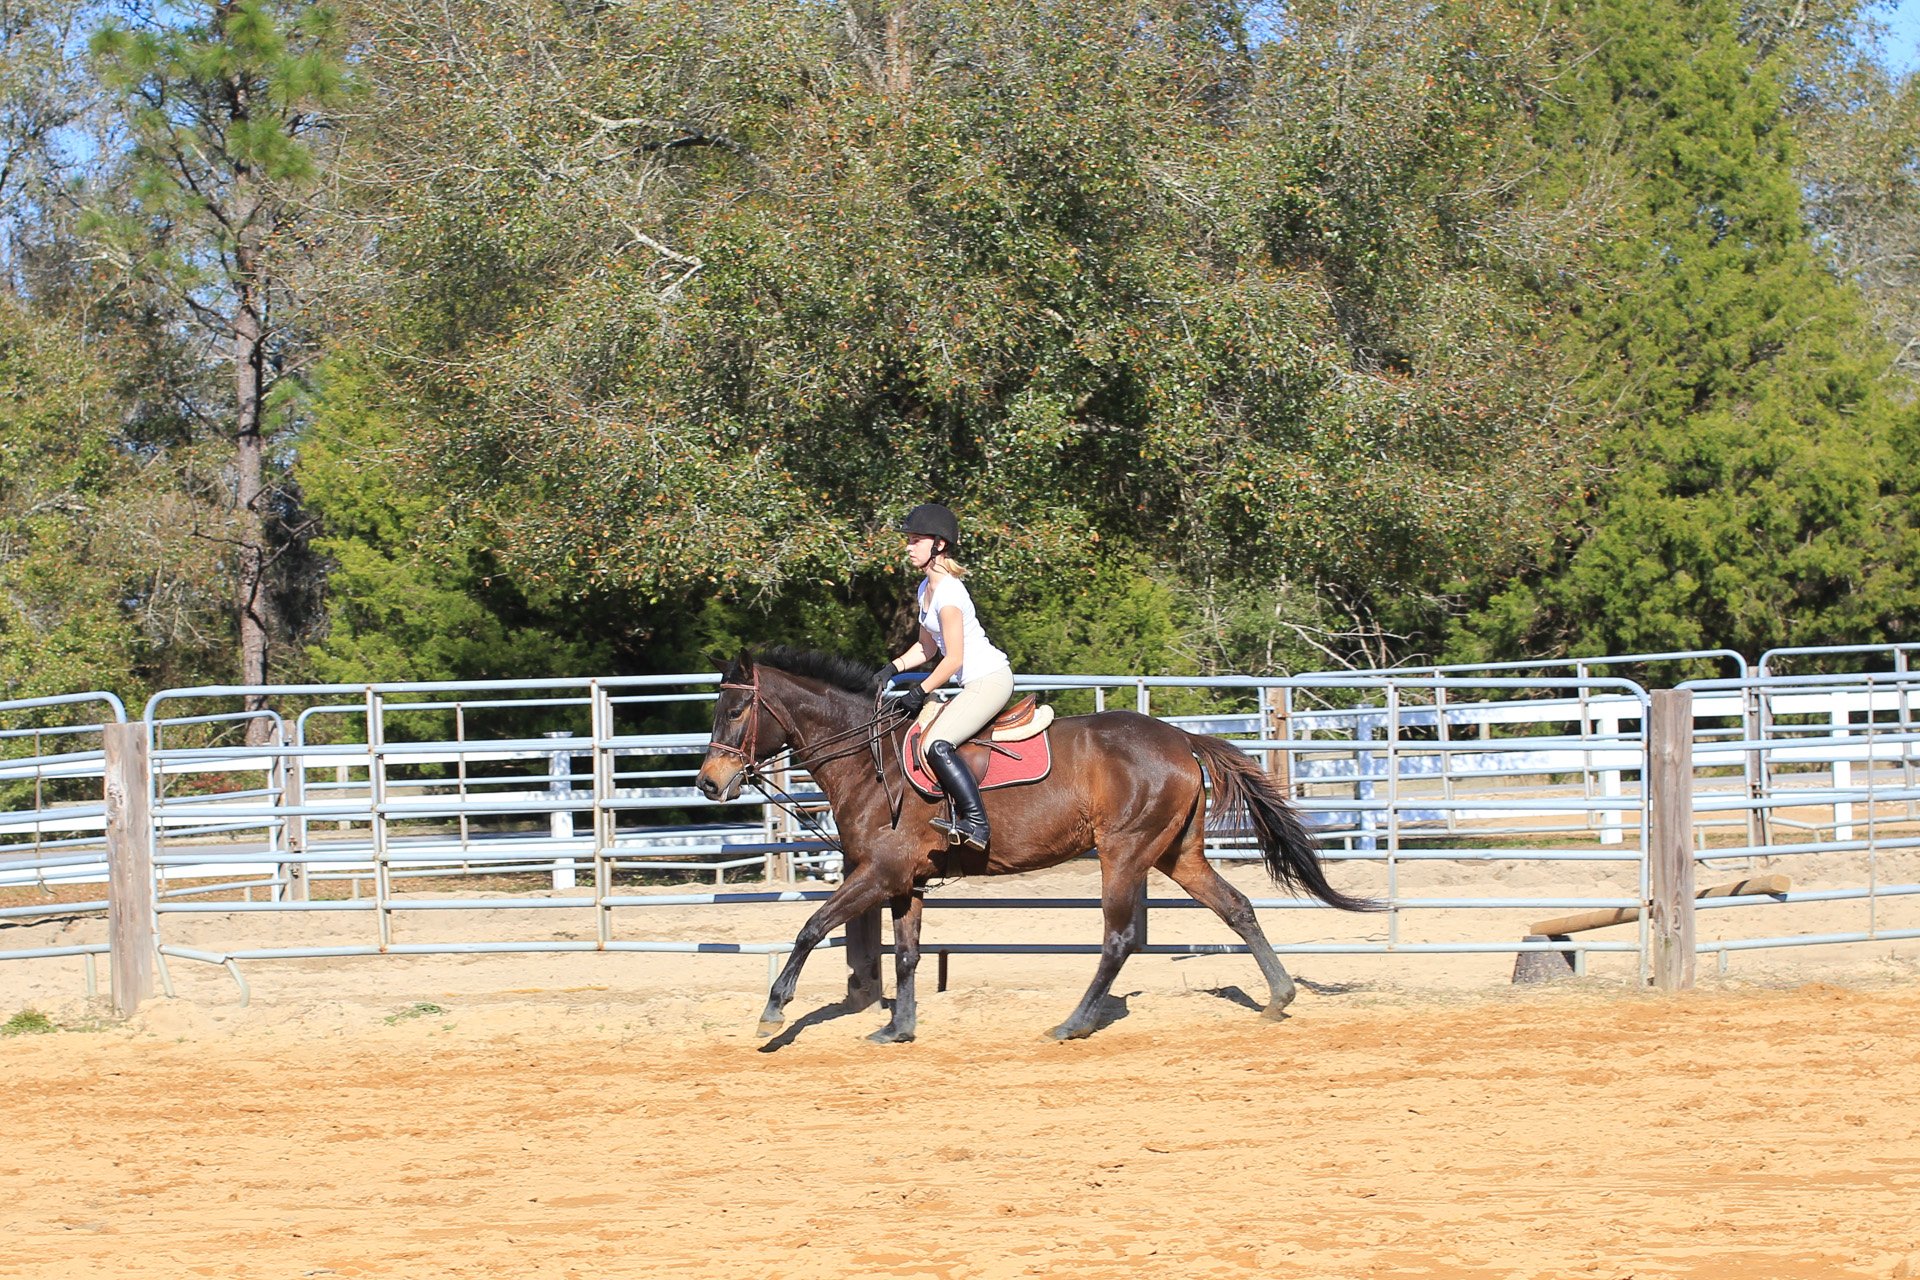 Horseback Riding Lesson At Cv Equestrian In Chipley Fl Horse Lessons And Panama City Beach Area